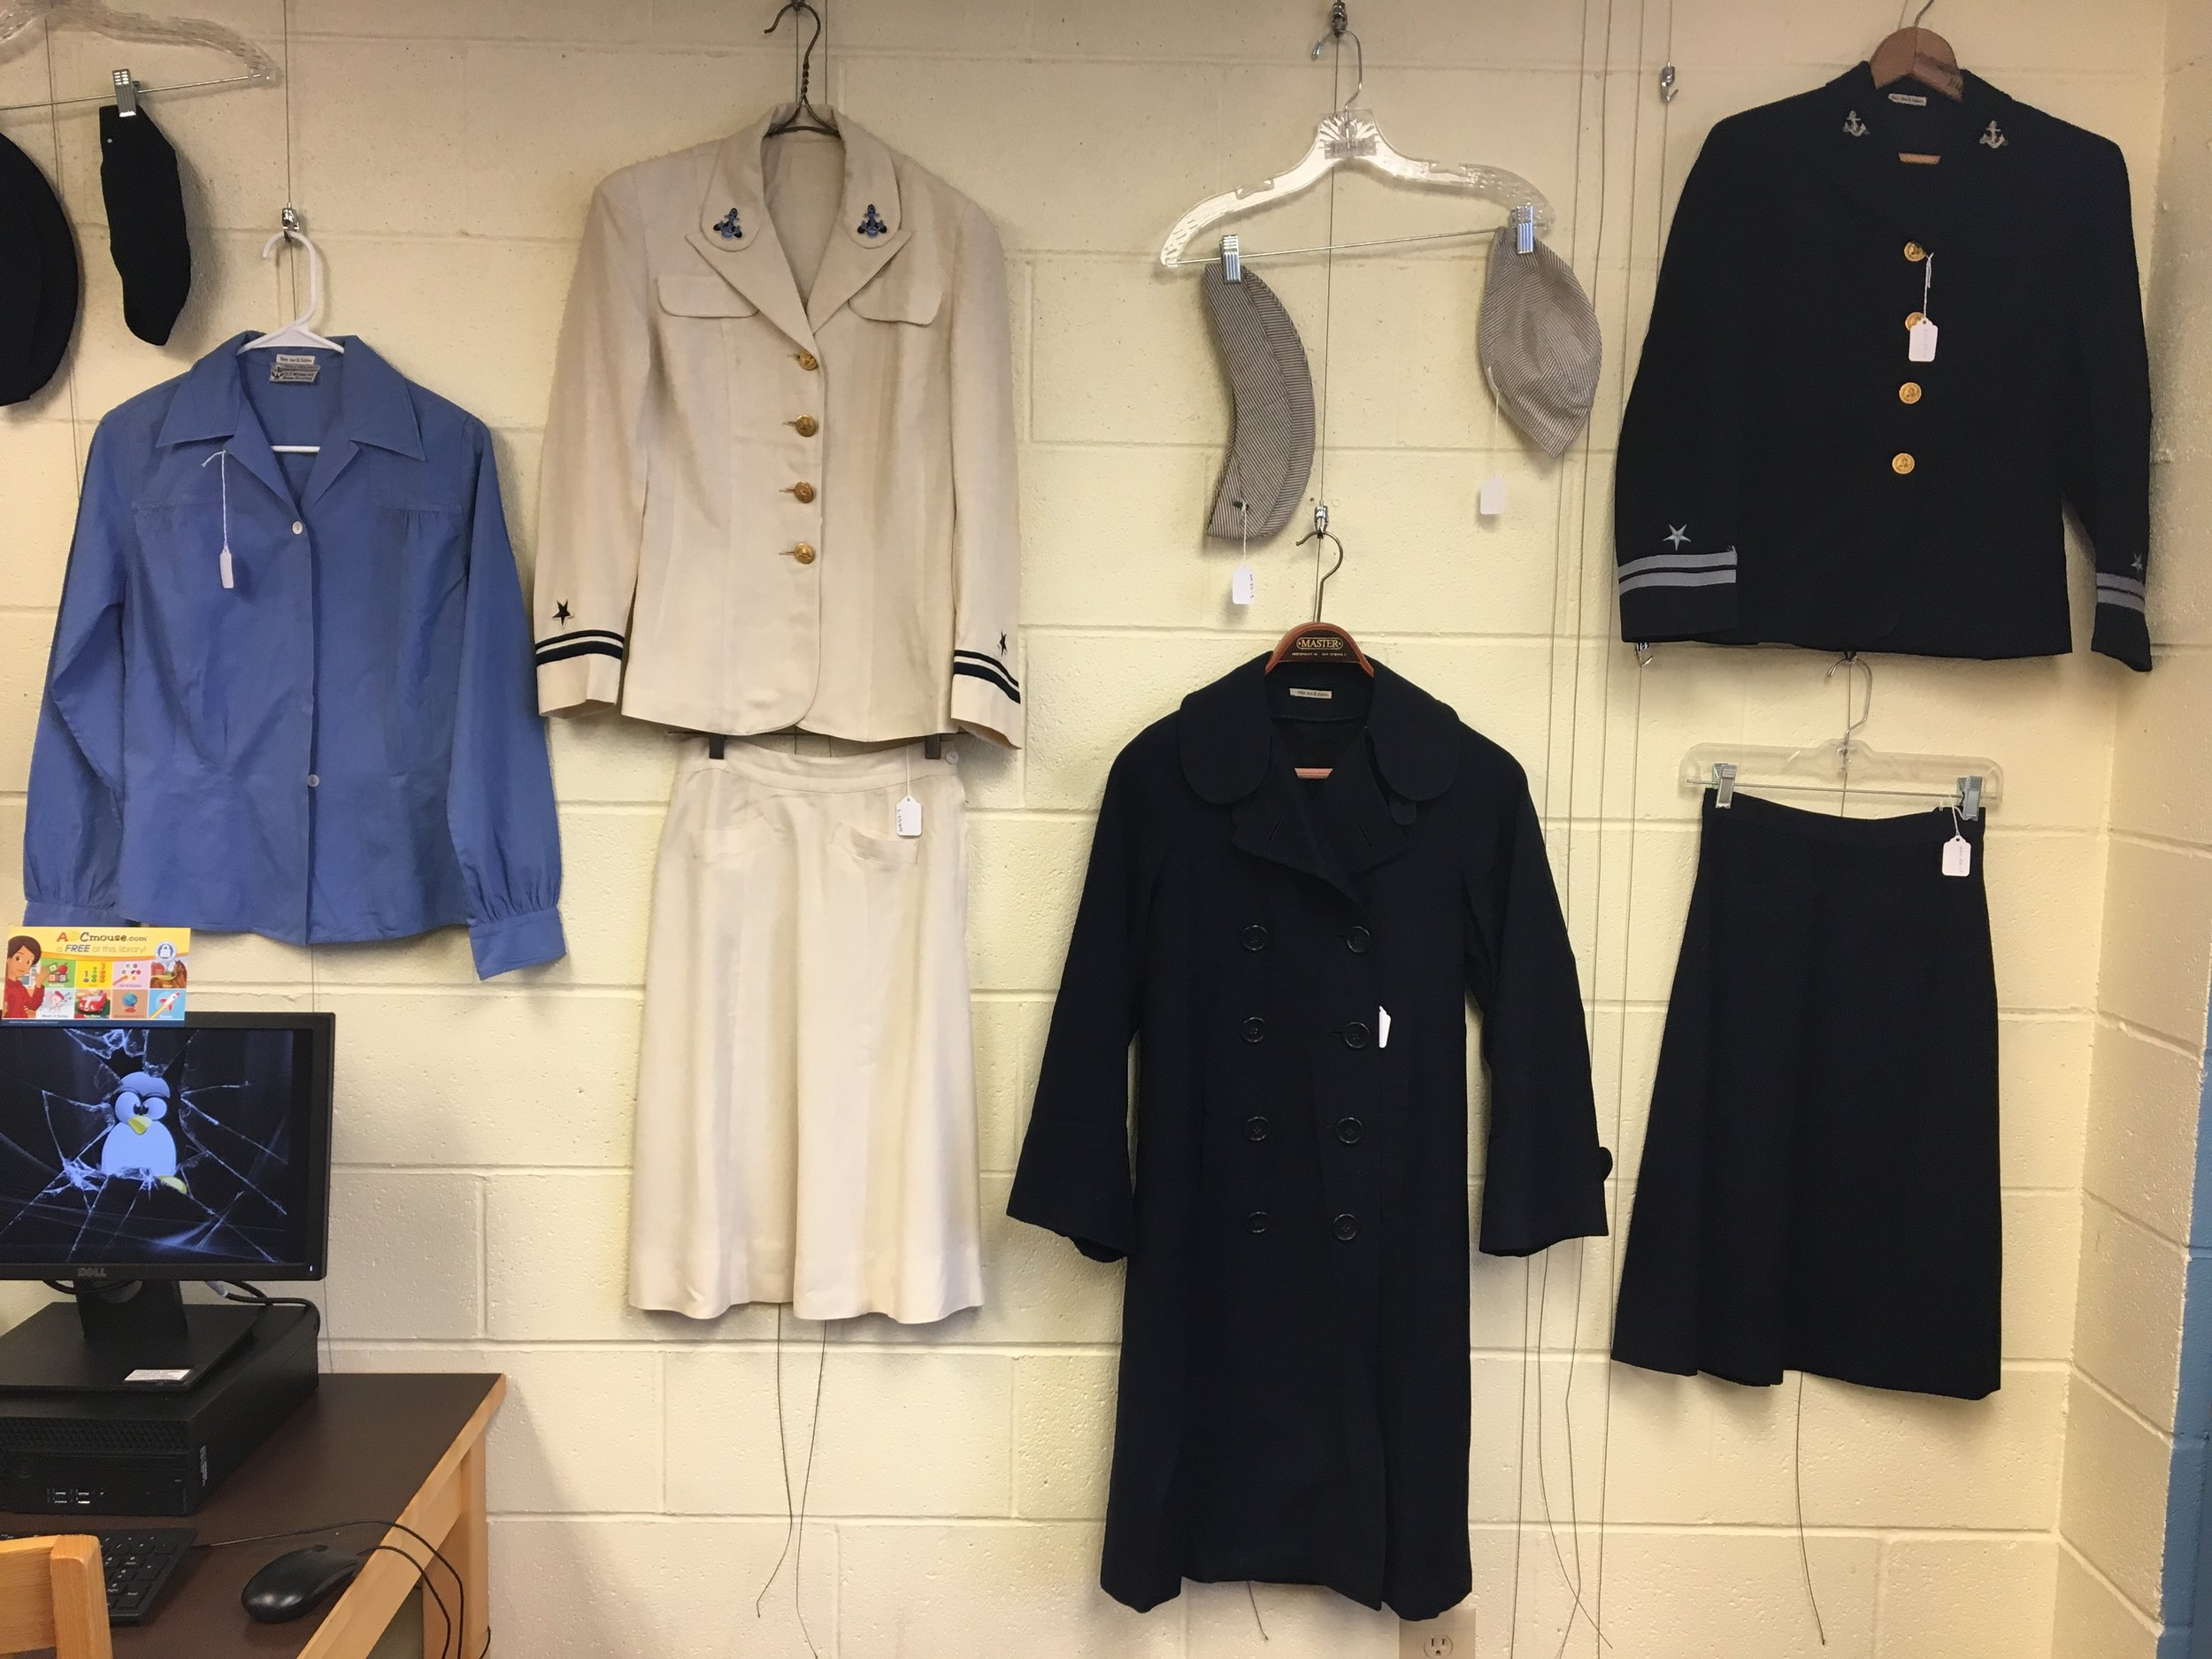 Additional uniforms on display with small tags detailing the time it was worn in service, the owner and which branch it is from.